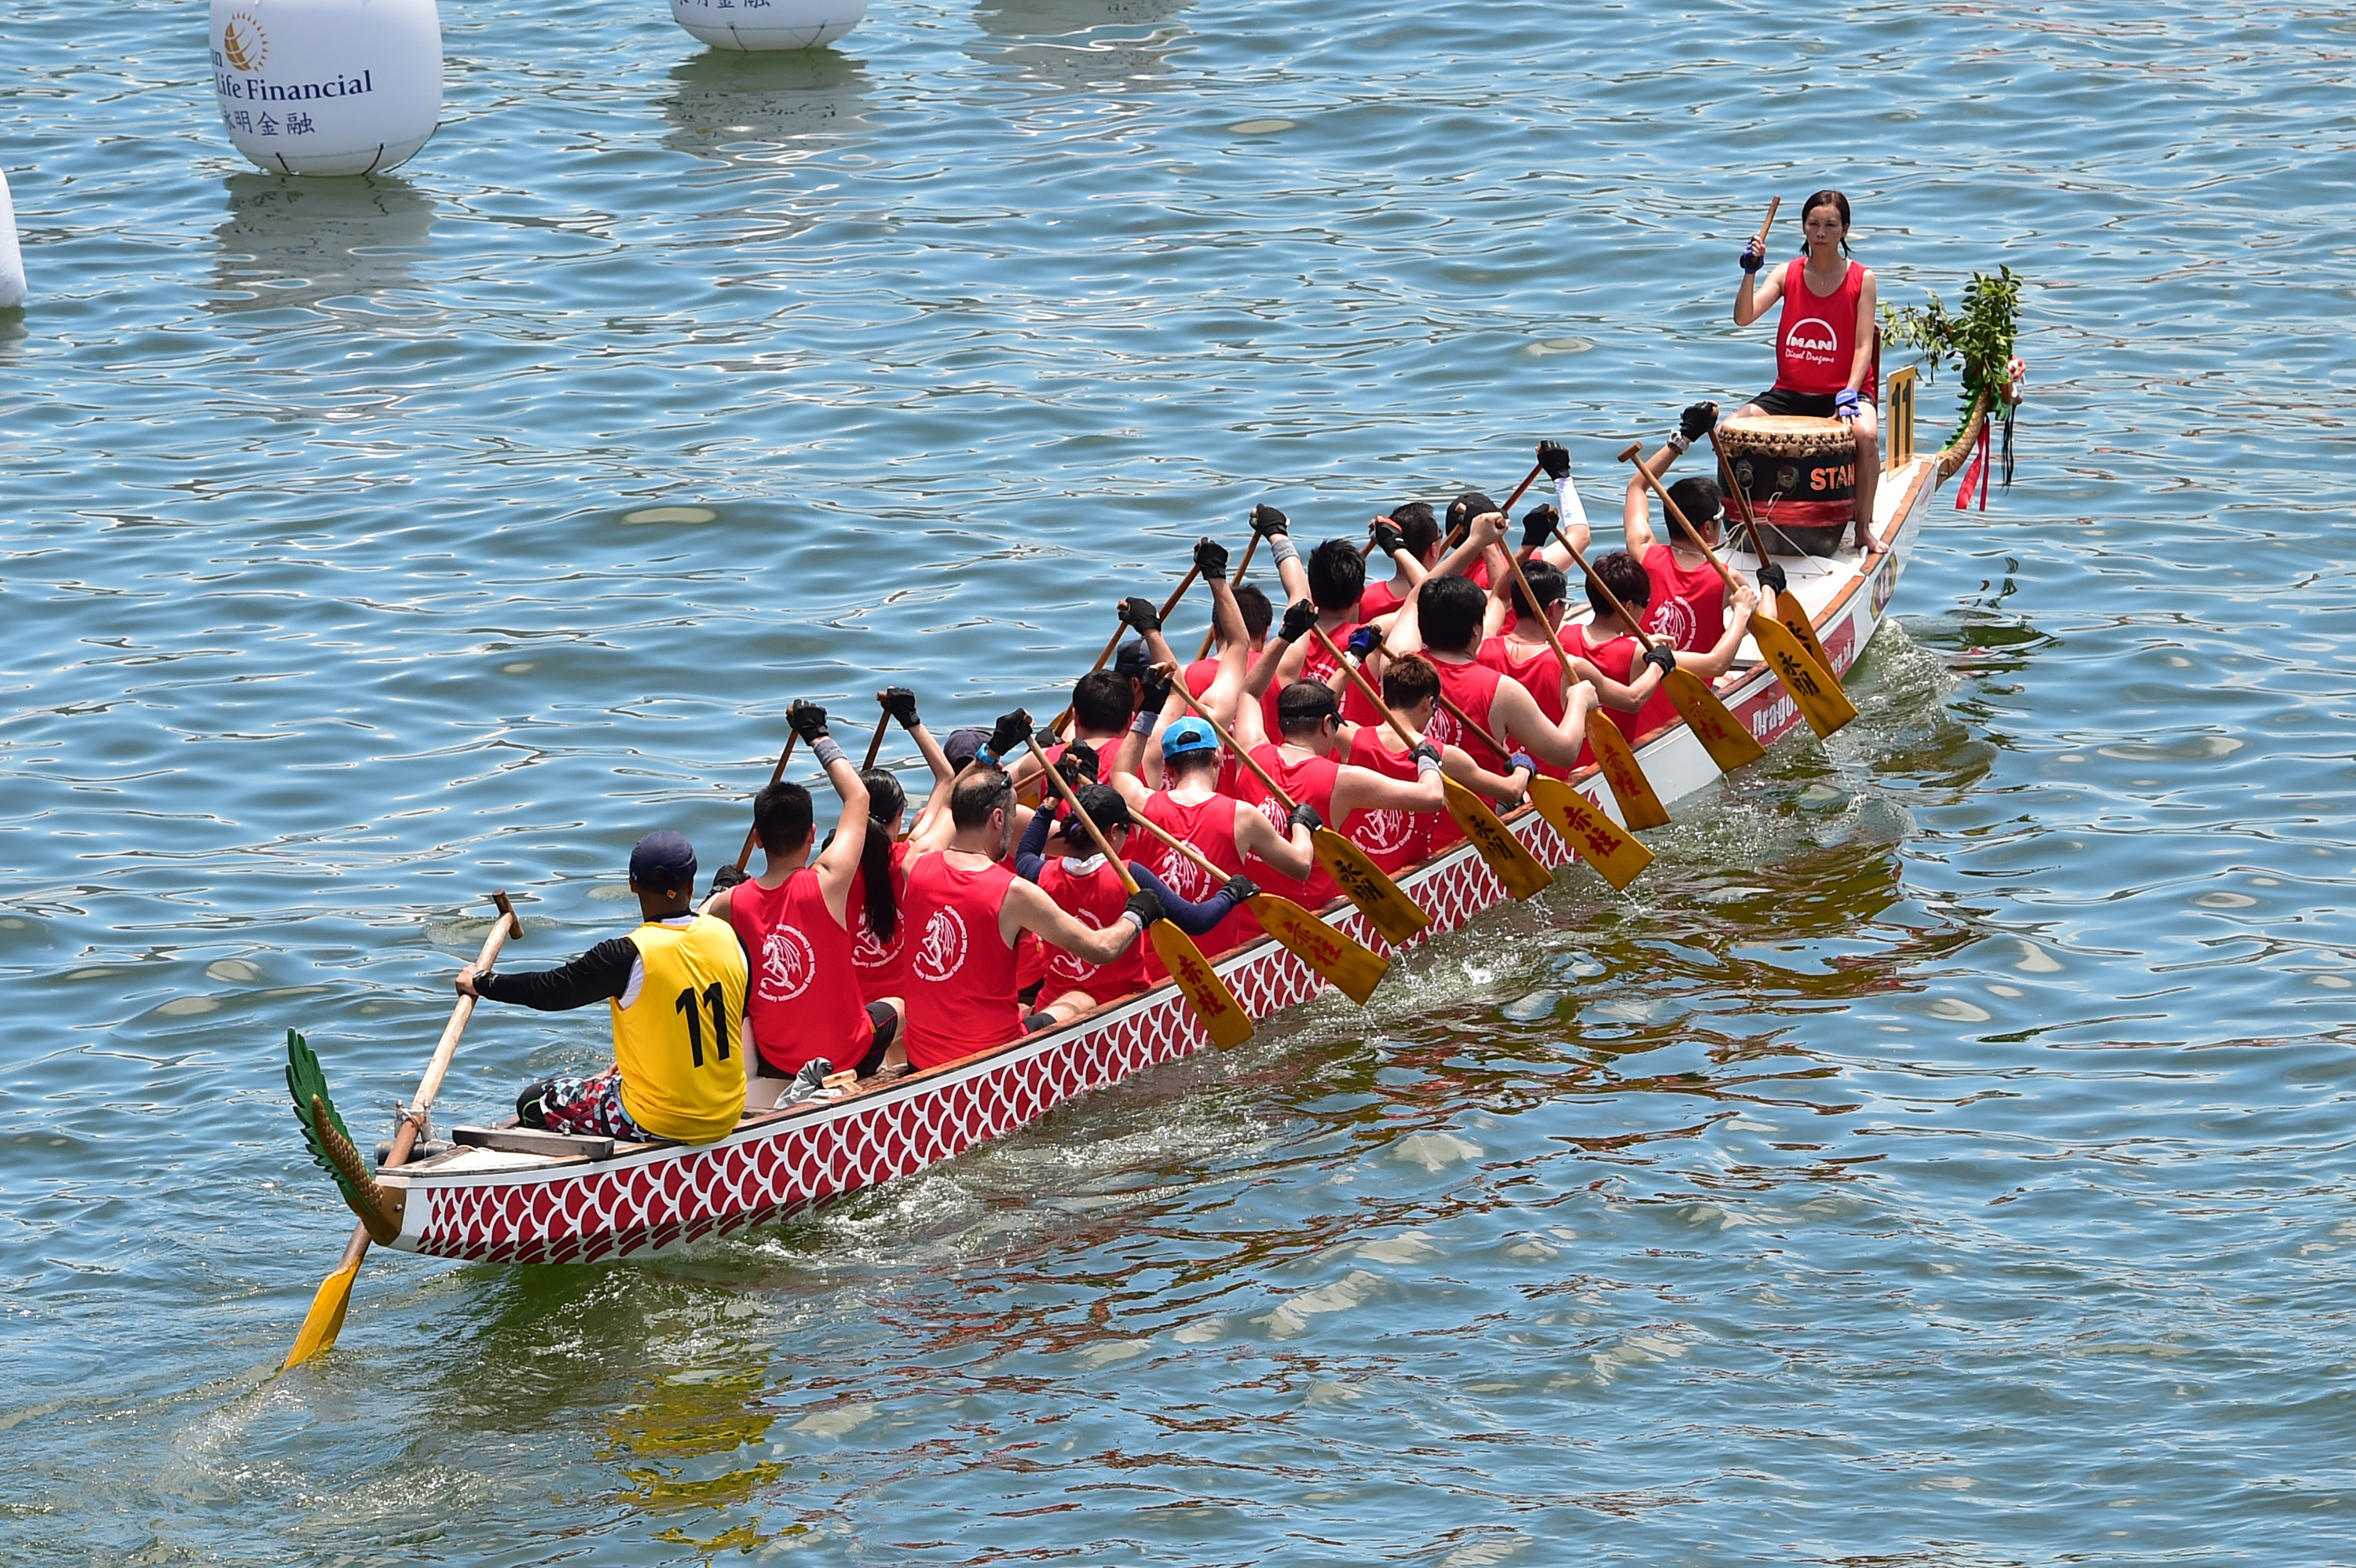 dragon boat festival The duanwu festival, also often known as the dragon boat festival, is a traditional holiday originating in china, occurring near the summer solstice.